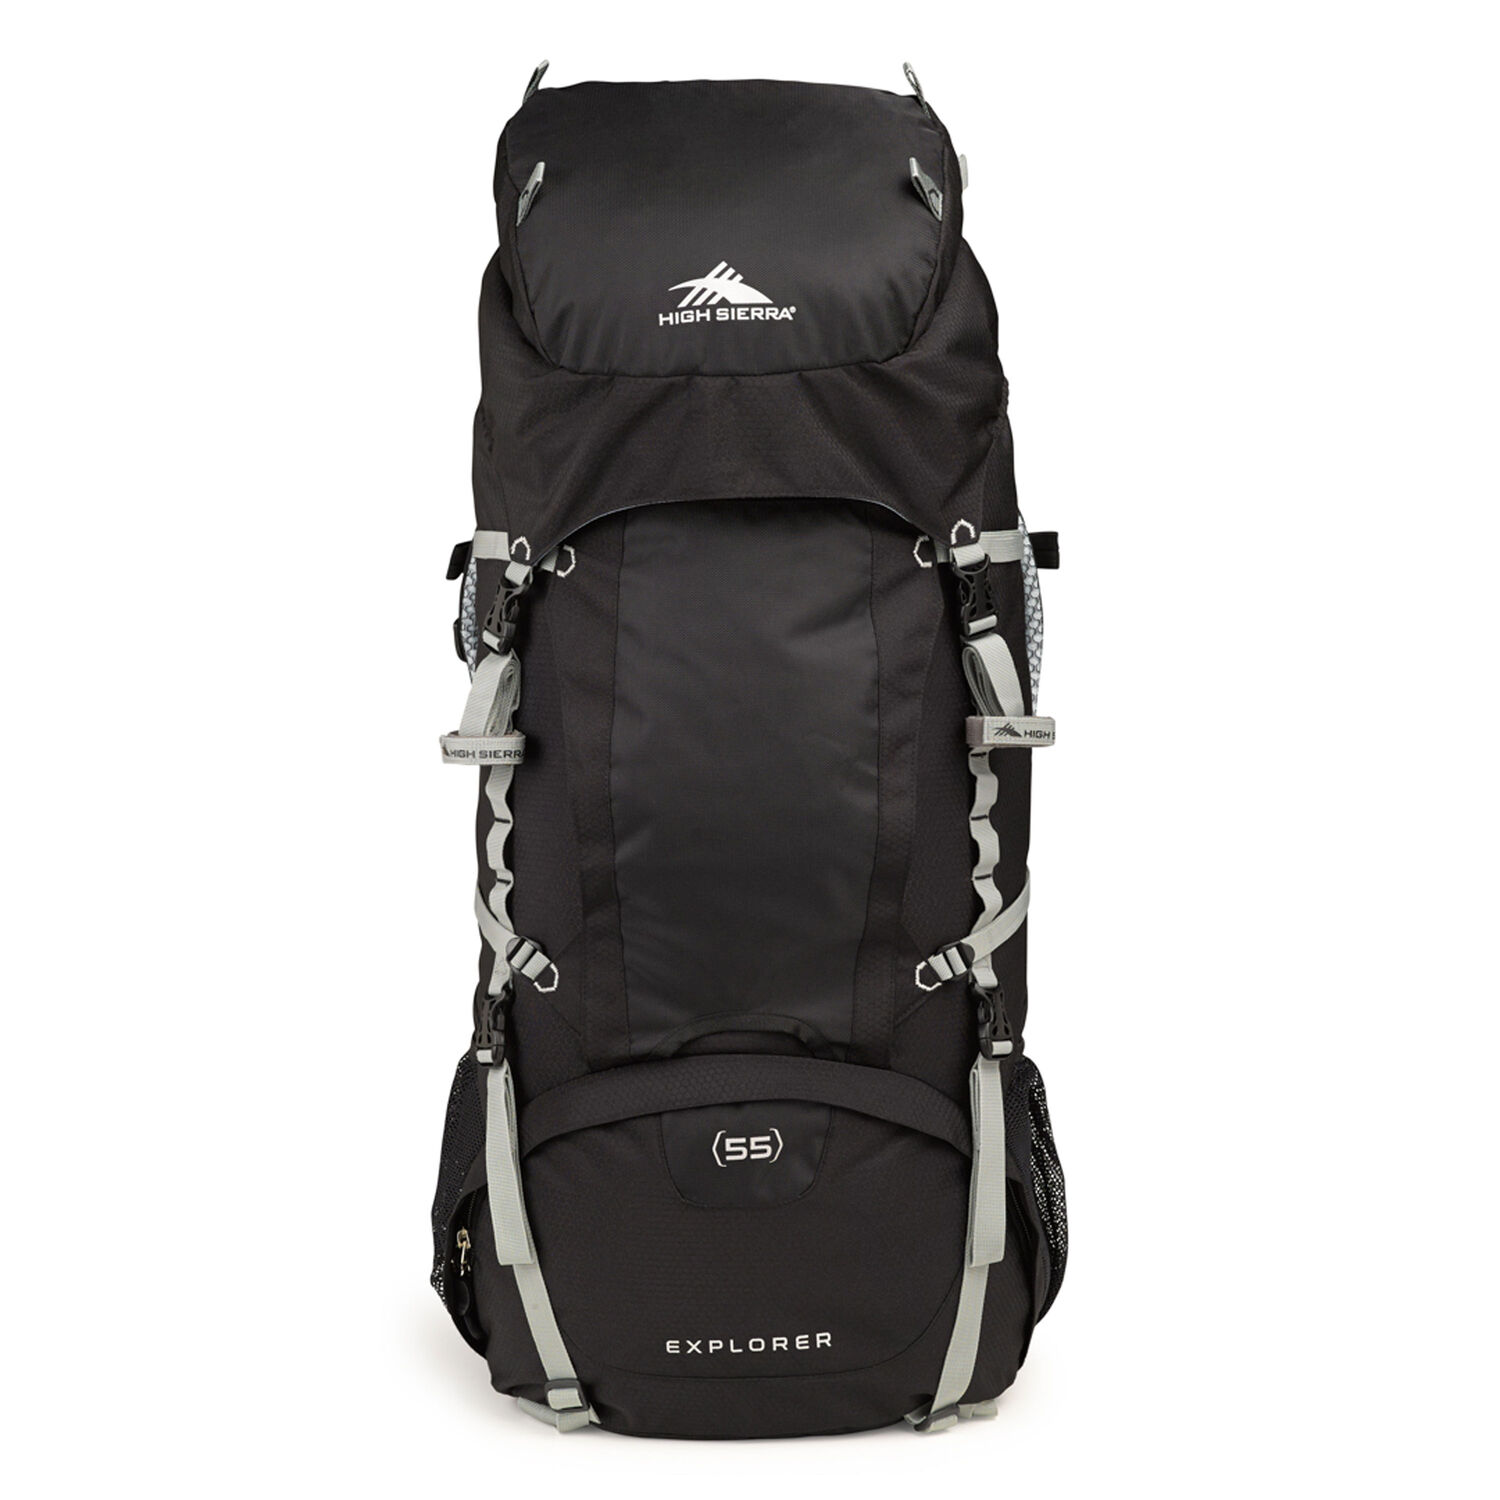 181912982 High Sierra Classic 2 Series Explorer 55 Frame Pack in the color  Black/Silver.